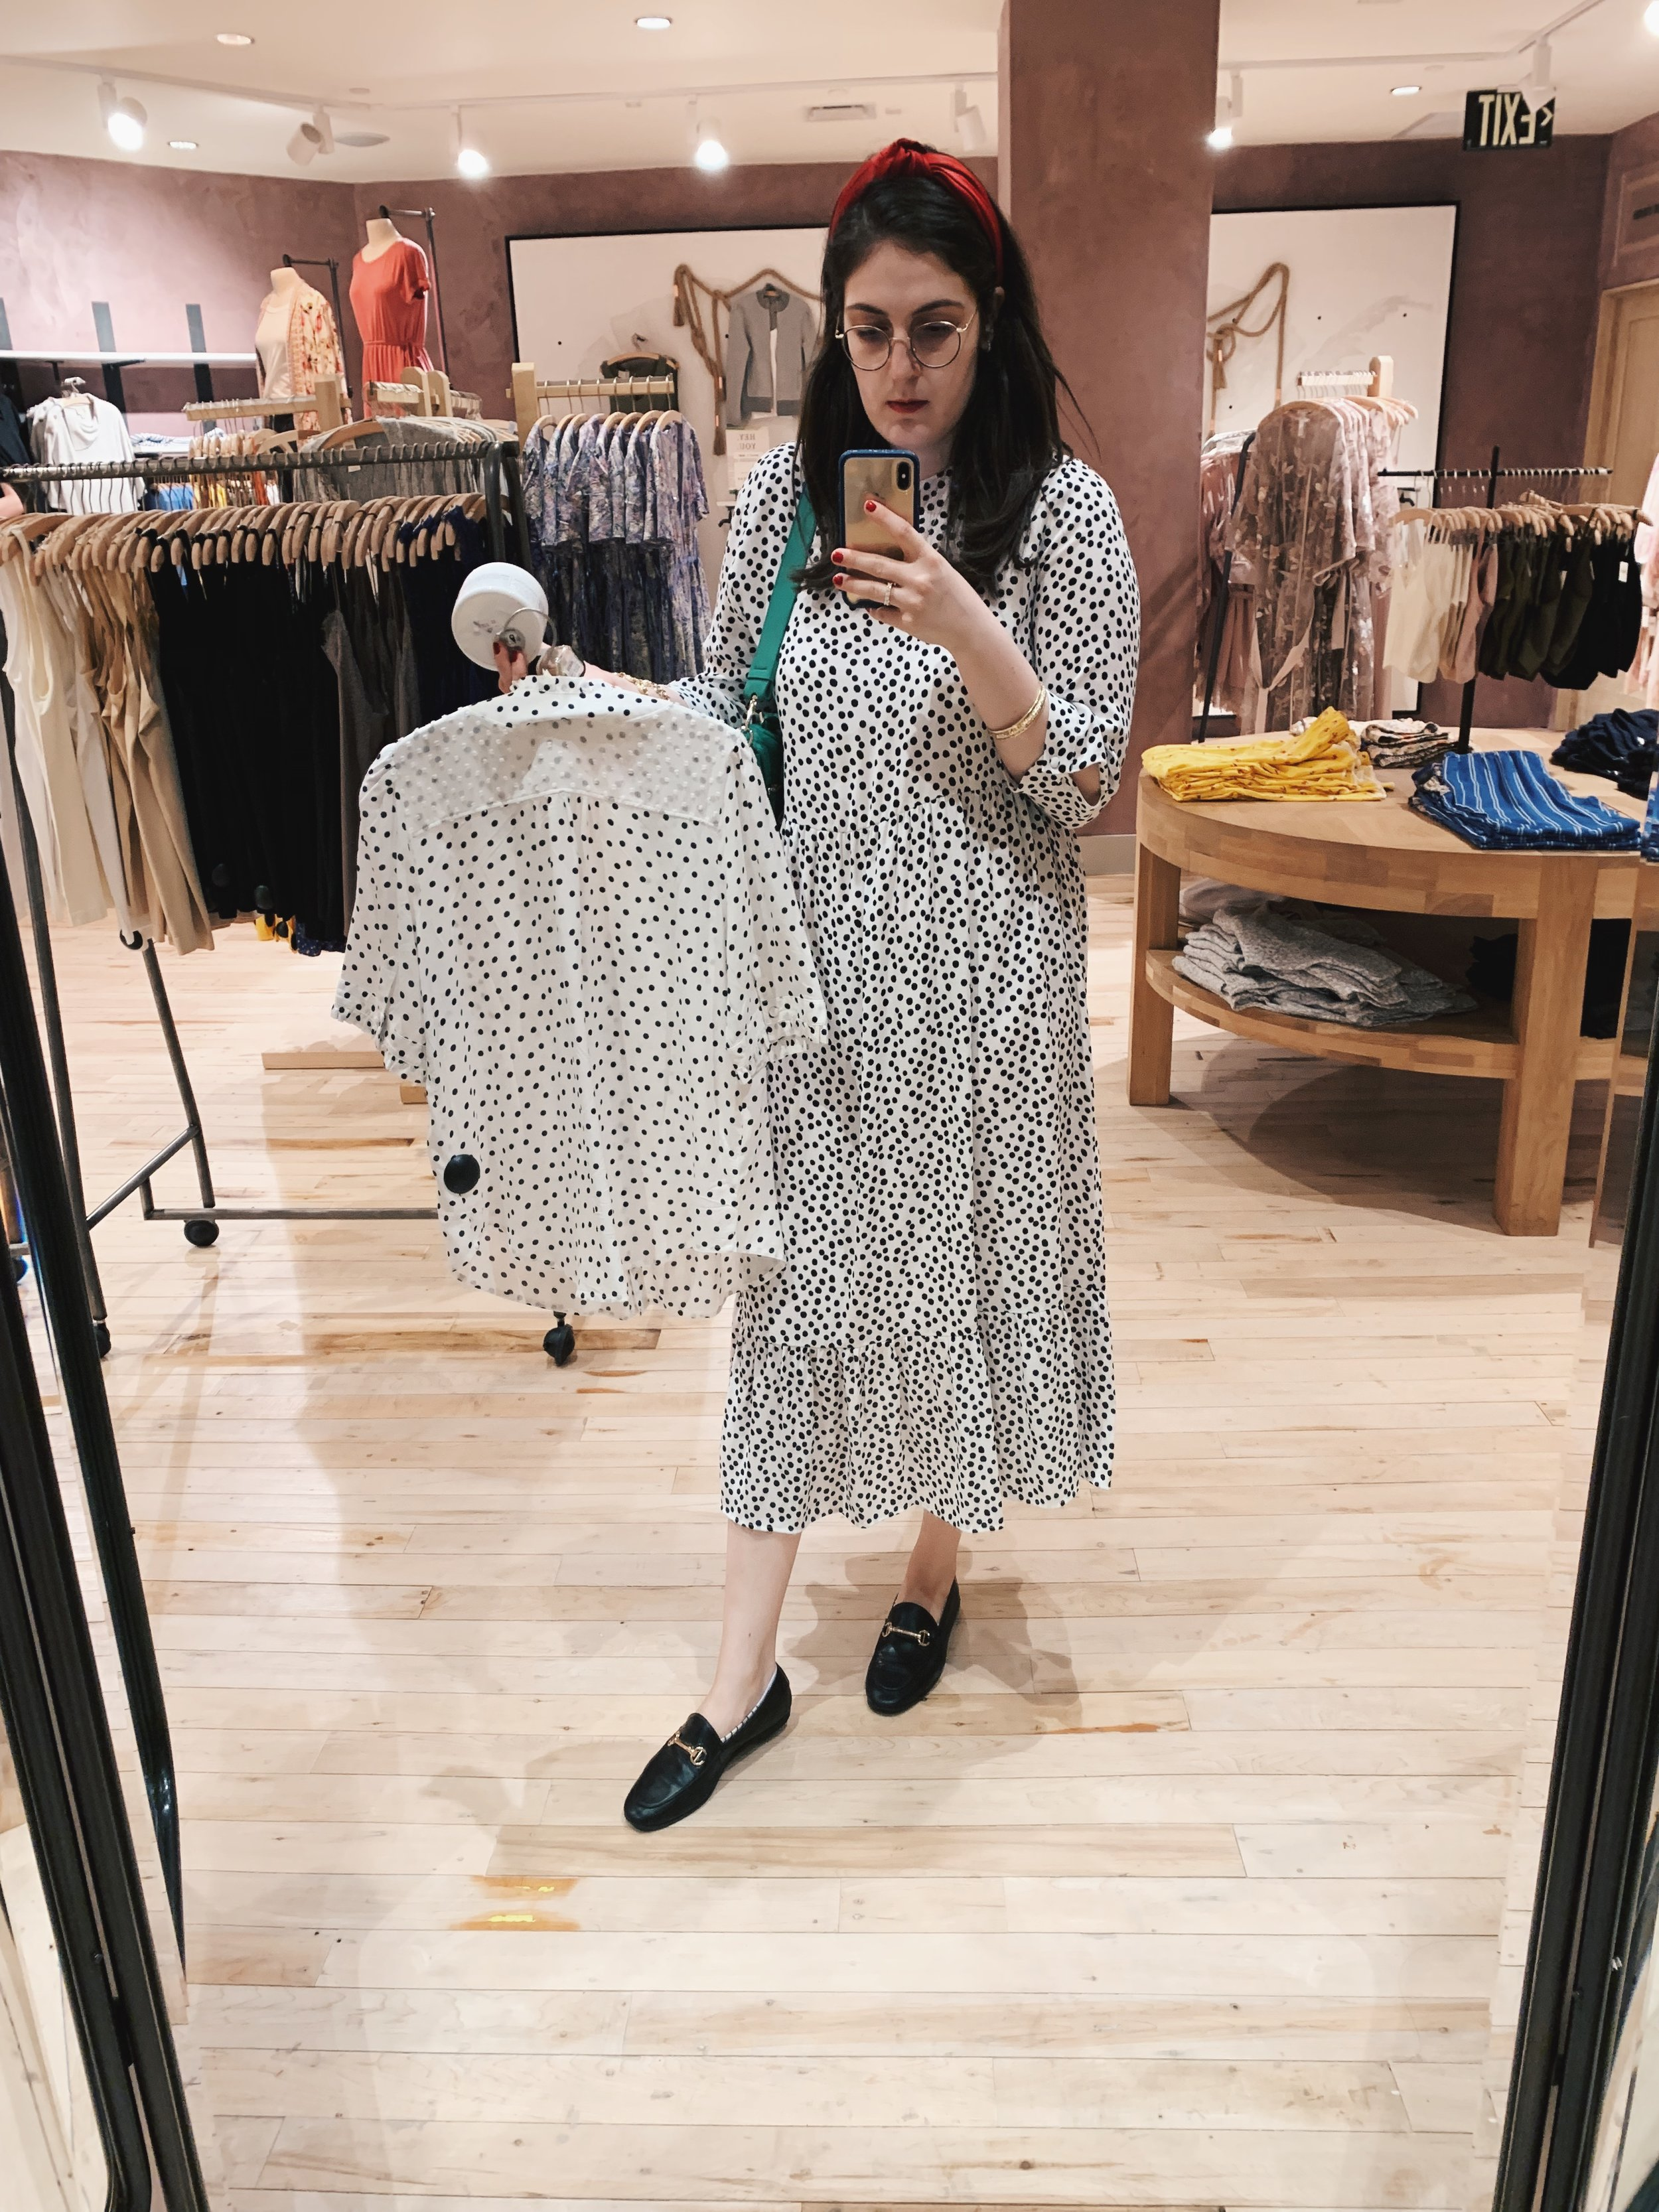 Contemplating yet another polka dot purchase (and reader, it was purchased)